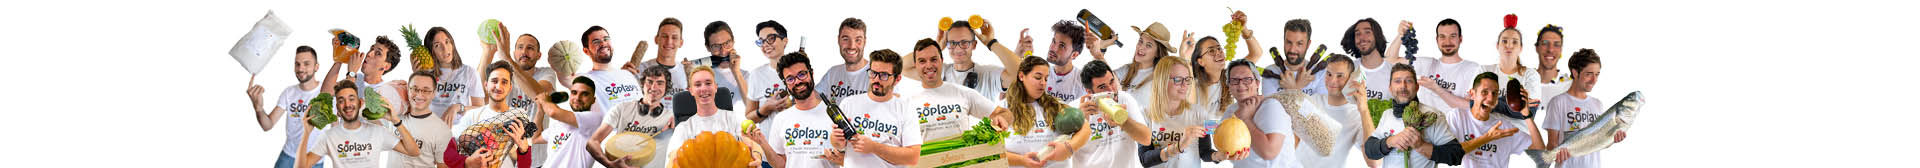 team soplaya